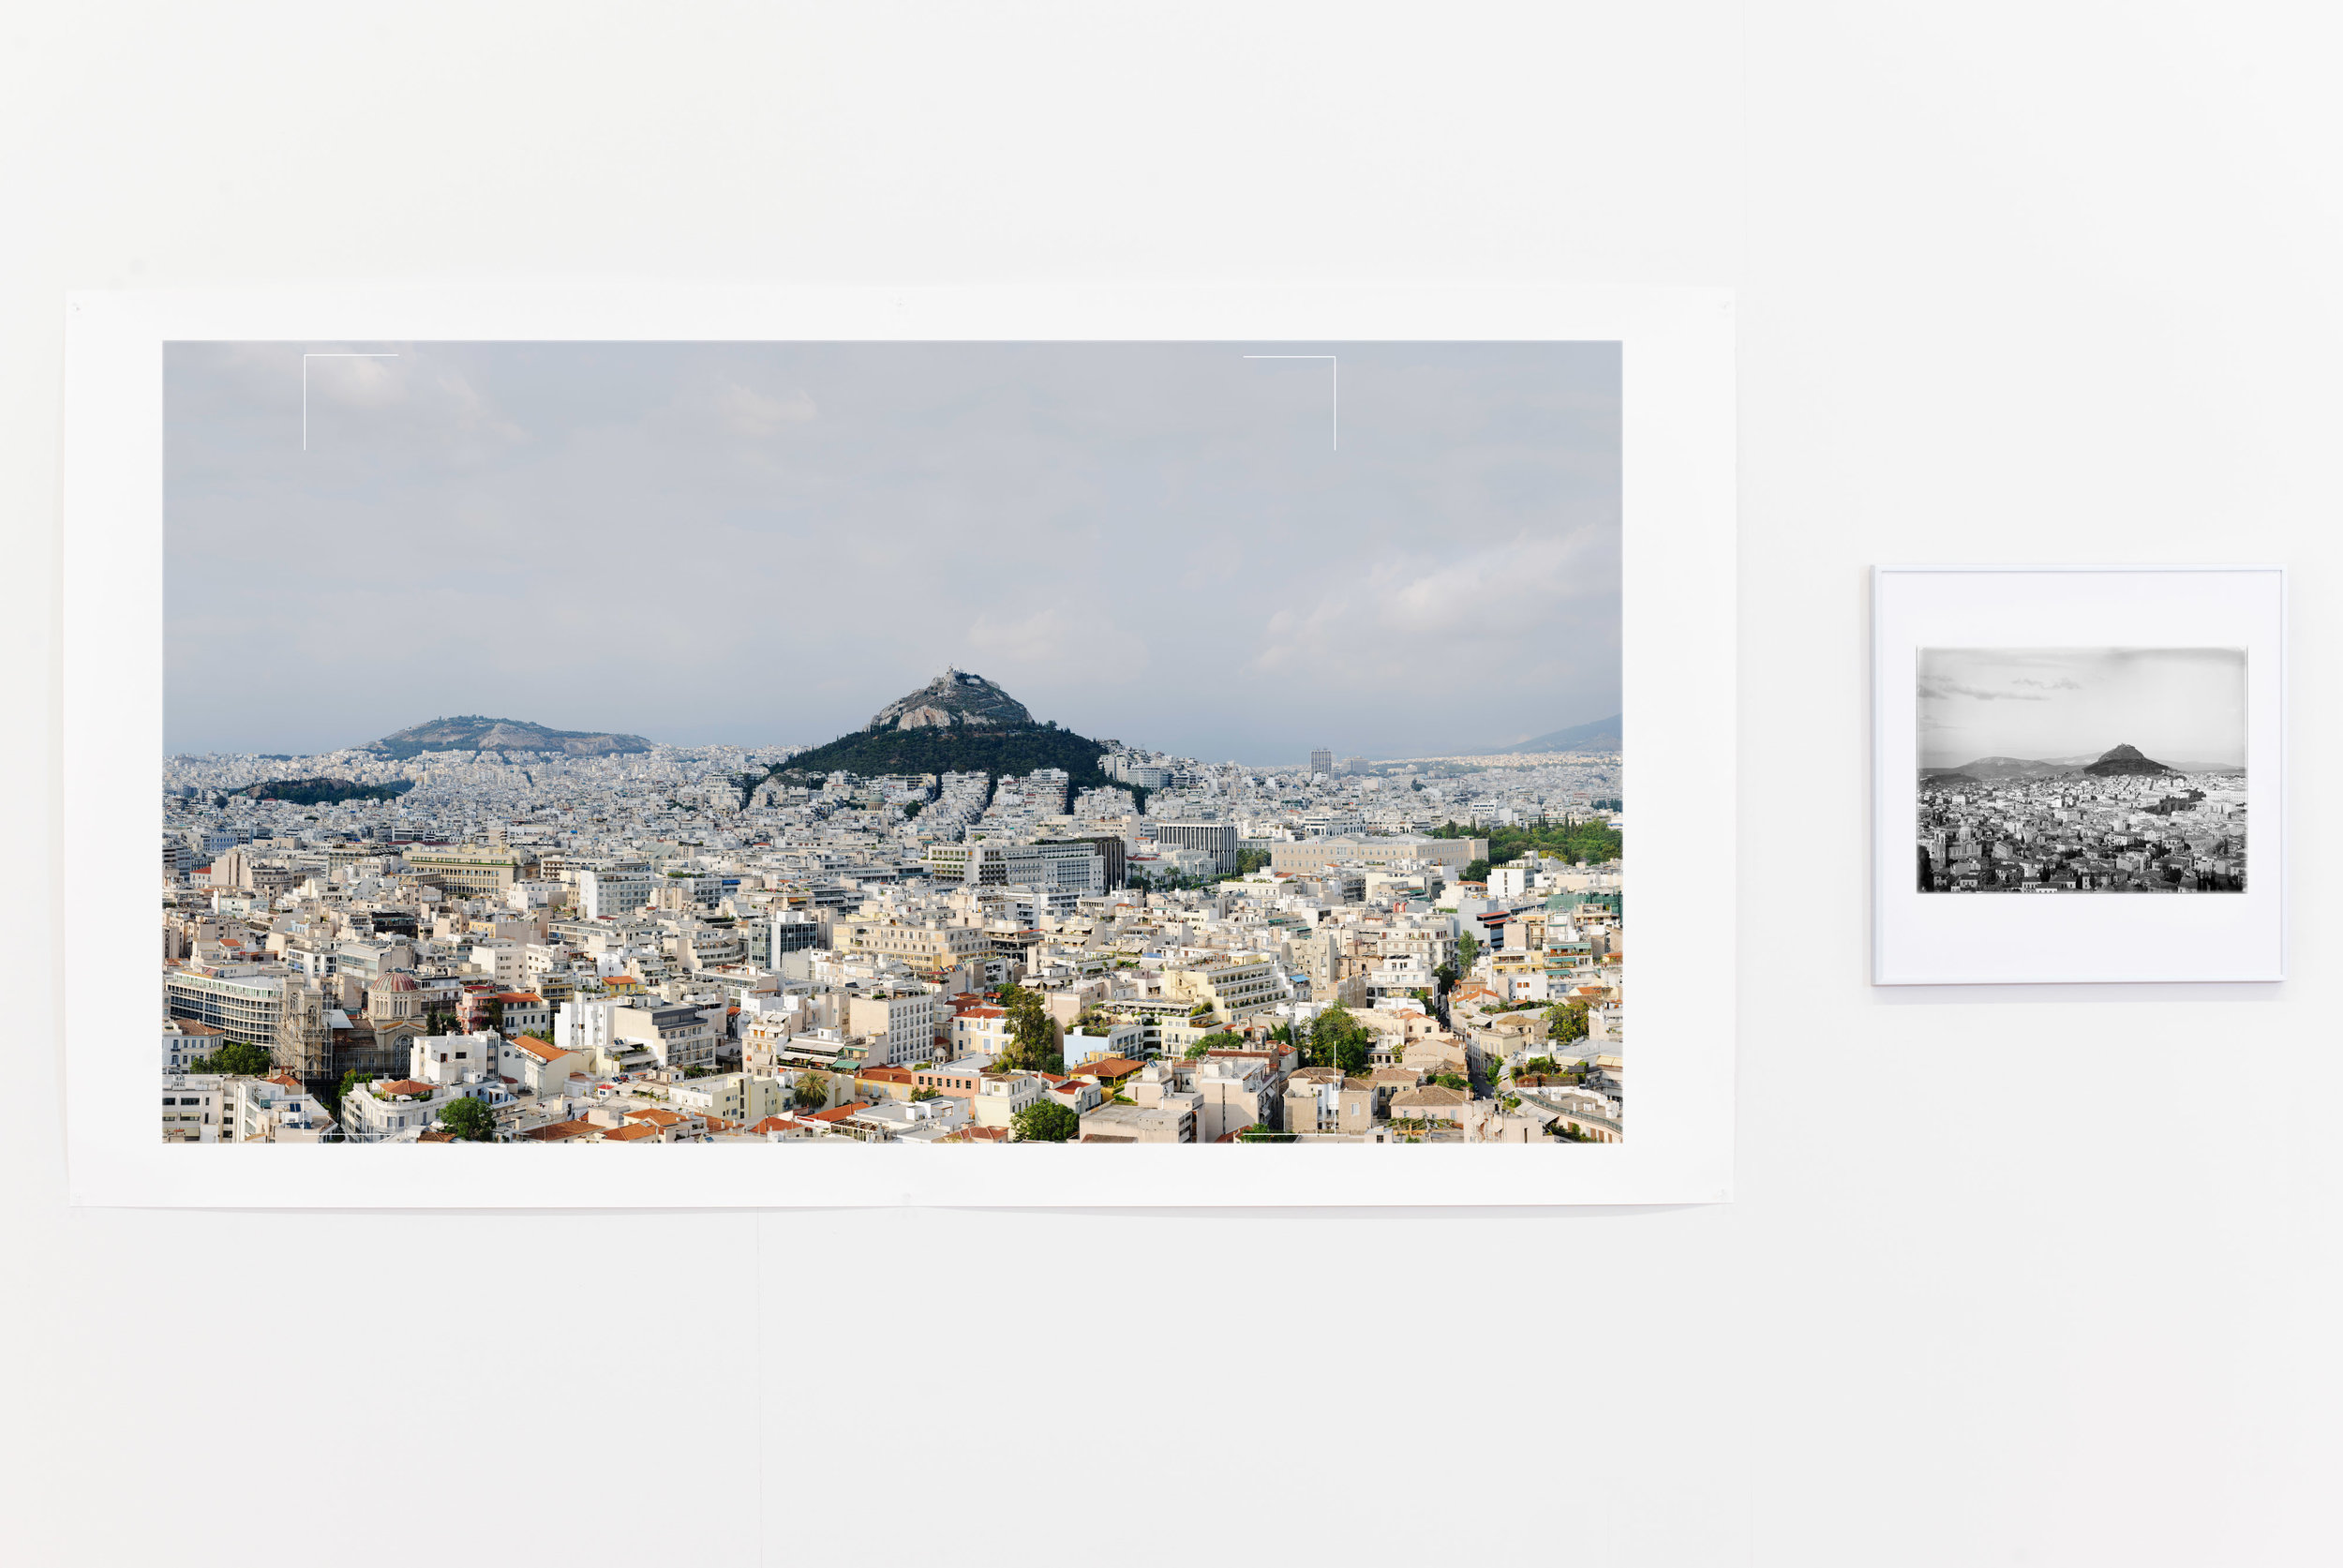 """L - Rowan Conroy,  View of central Athens from the Acropolis. 5:46 pm, 5 June 2010, 7˚58""""19 N 23˚43'39"""" E,  2010, pigment inkjet print on cotton rag paper, 110x195cm. R - William John Woodhouse, NM2007.55.7,  View of Central Athens and Lycabettus, looking north,  c.1908. Carbon Piezo print on cotton rag, 29.4x38.4cm. Reprinted 2011 from scan of original glass plate negative (16.5x21.6cm). Copyright Nicholson Museum, The University of Sydney."""